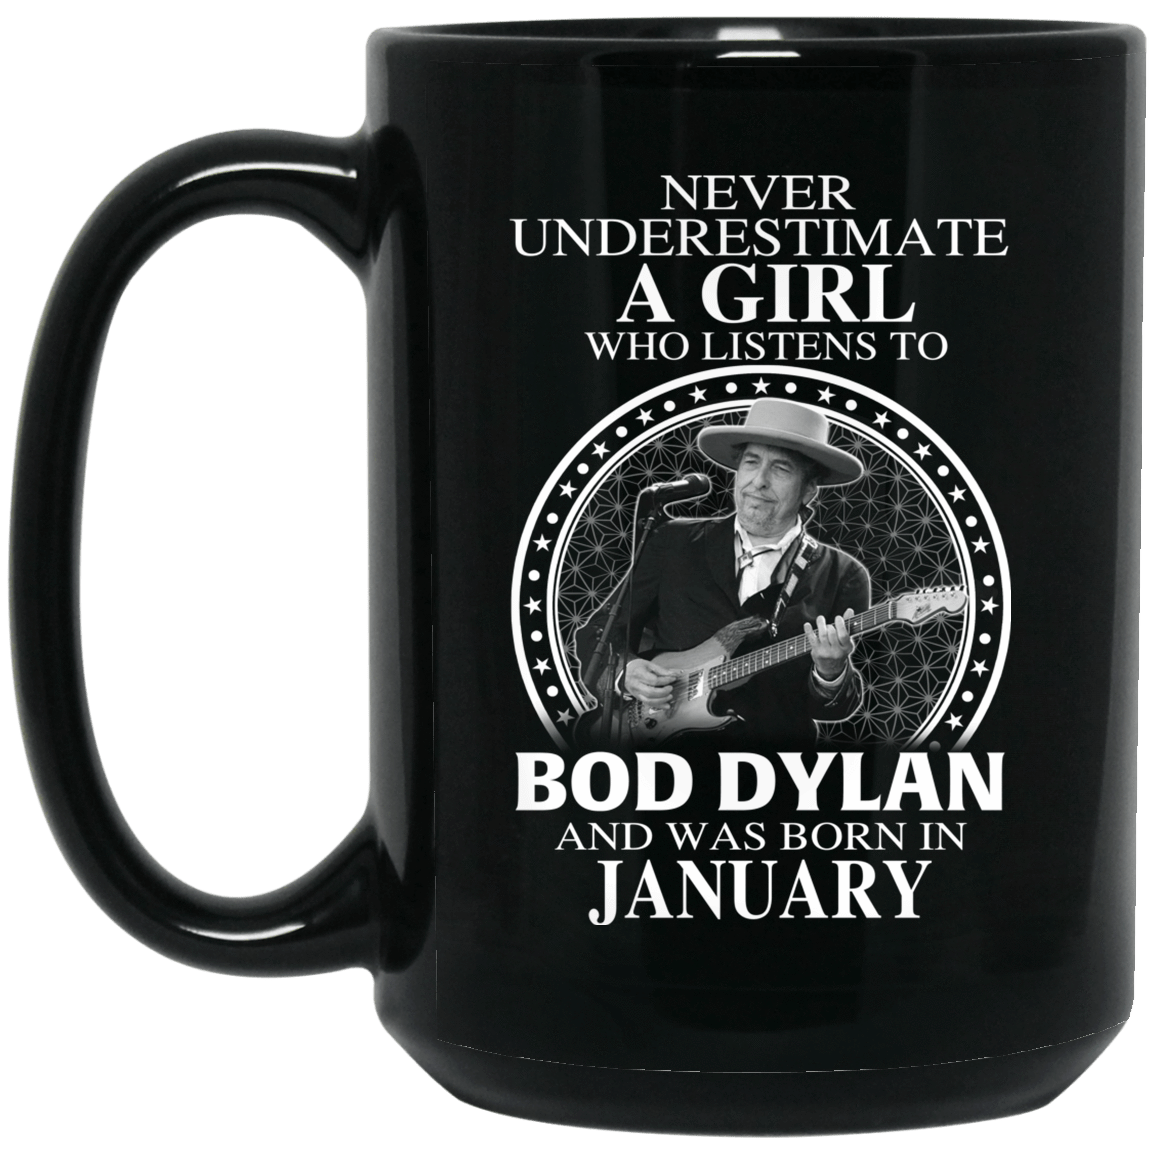 A Girl Who Listens To Bob Dylan And Was Born In January Mug 1066-10182-76153677-49311 - Tee Ript